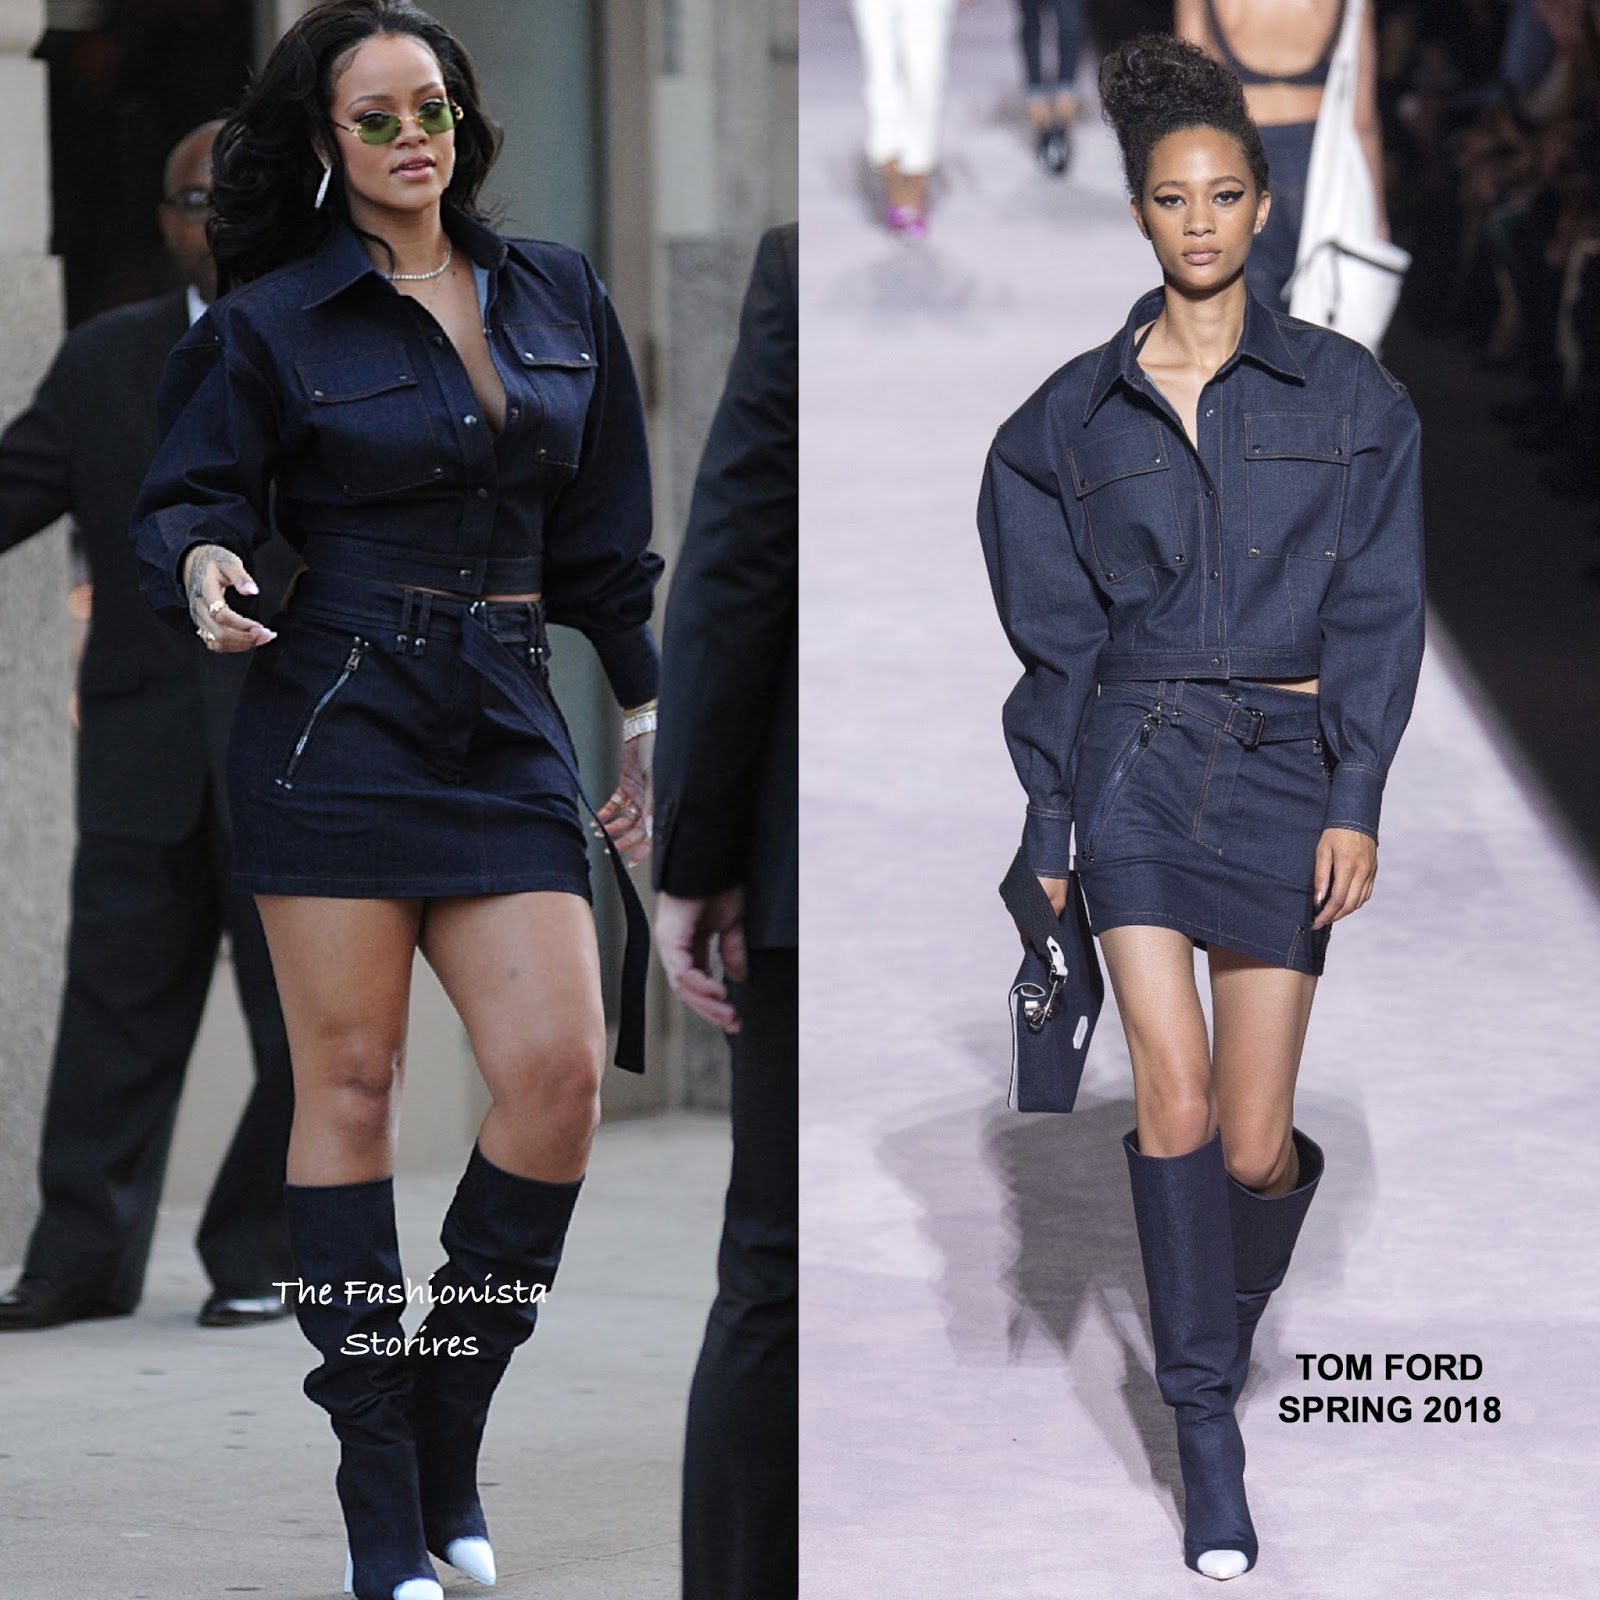 cdc6325c2e6 Rihanna in tom ford out in new york jpg 1600x1600 Tom ford boots rihanna